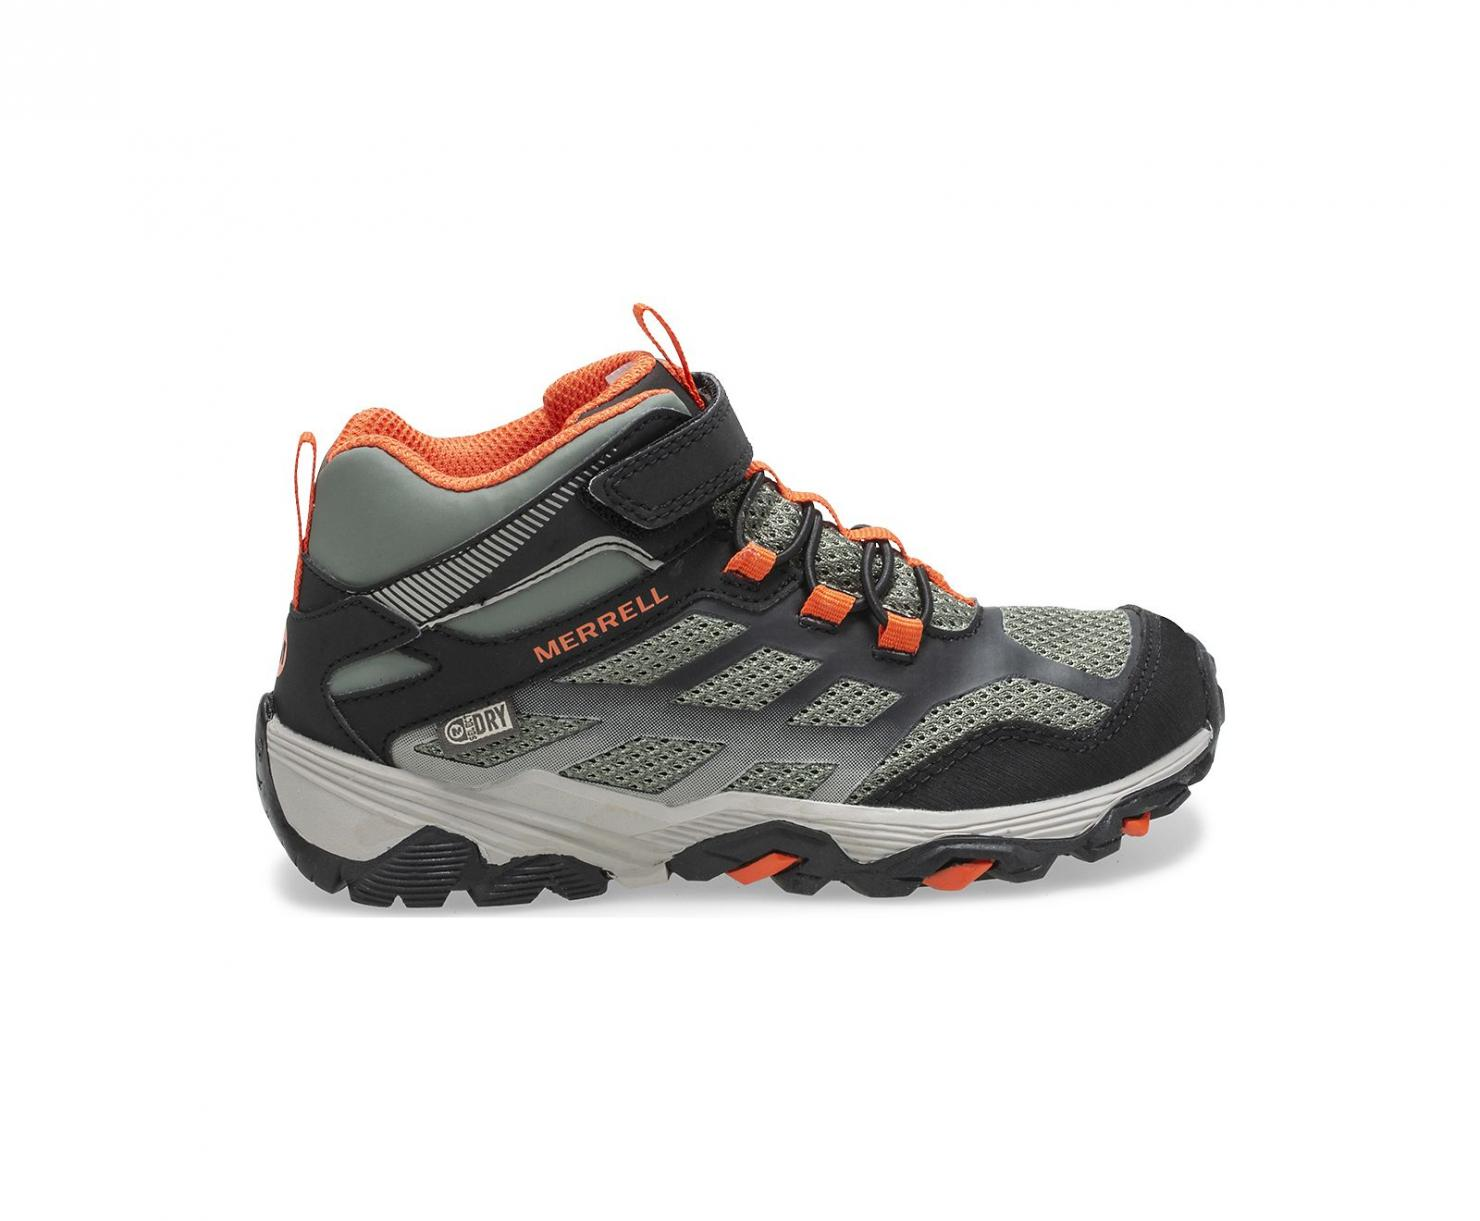 Merrell Mädchen/Jungs Stiefel | Moab FST Mid A/C Waterproof Boot Olive/Black